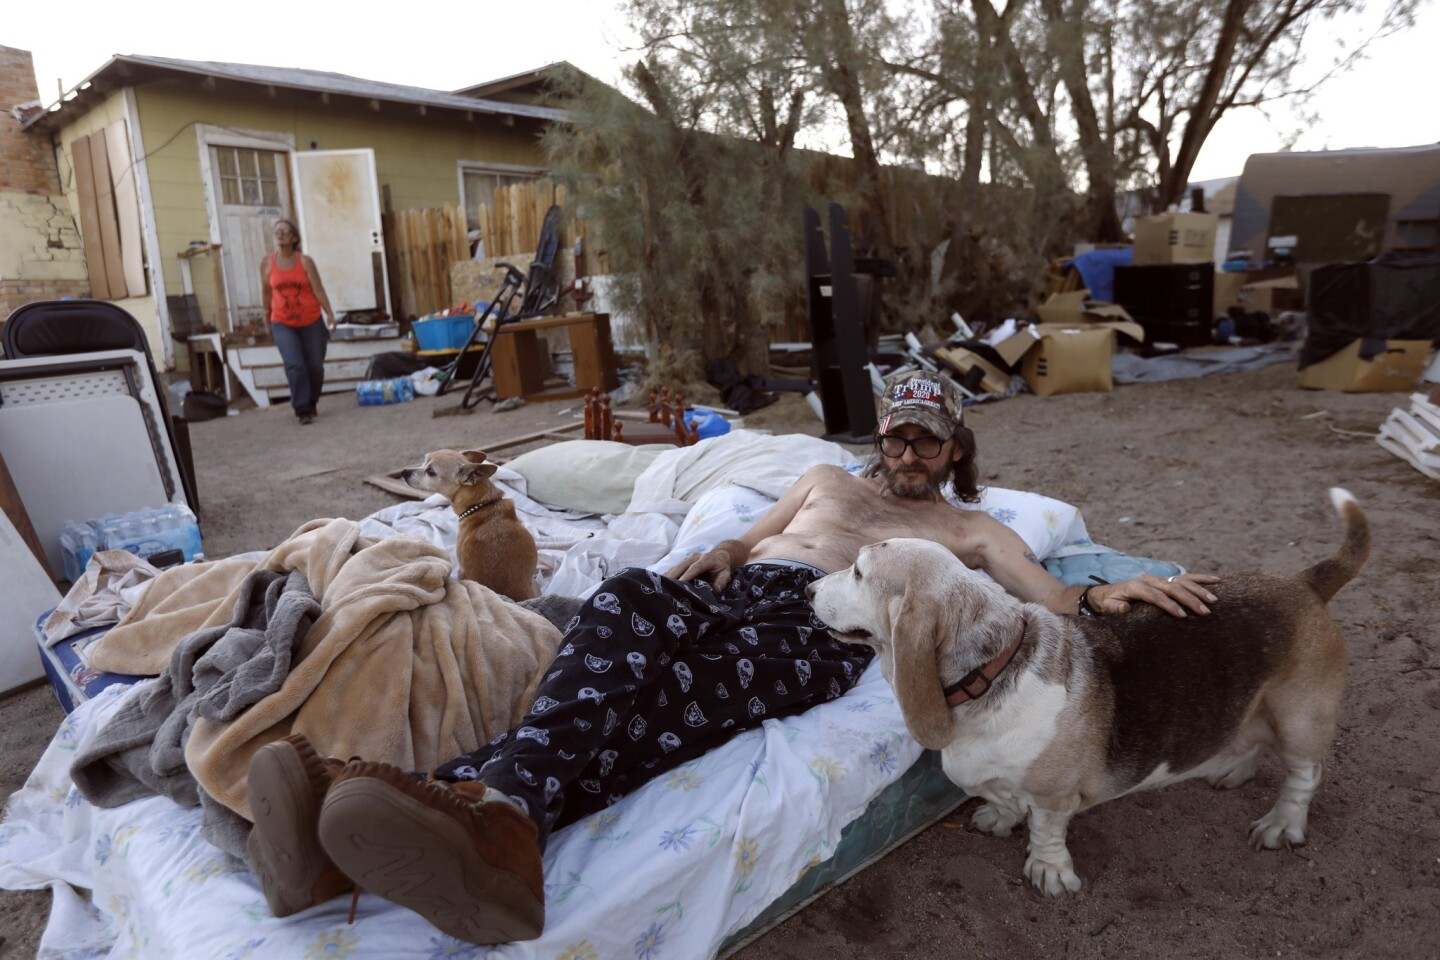 """Dan Tolbert, 62, spends time with his dogs as he and his wife, Ronnie, 60, prepare to bed down for the night on a pair of mattresses in front of their earthquake-damaged home in Trona on July 10. Their night was interrupted when a scorpion crawled on their mattresses and they ended up spending the night in their truck. """"If we keep feeling tremors tomorrow we'll be out here again,"""" Ronnie said."""